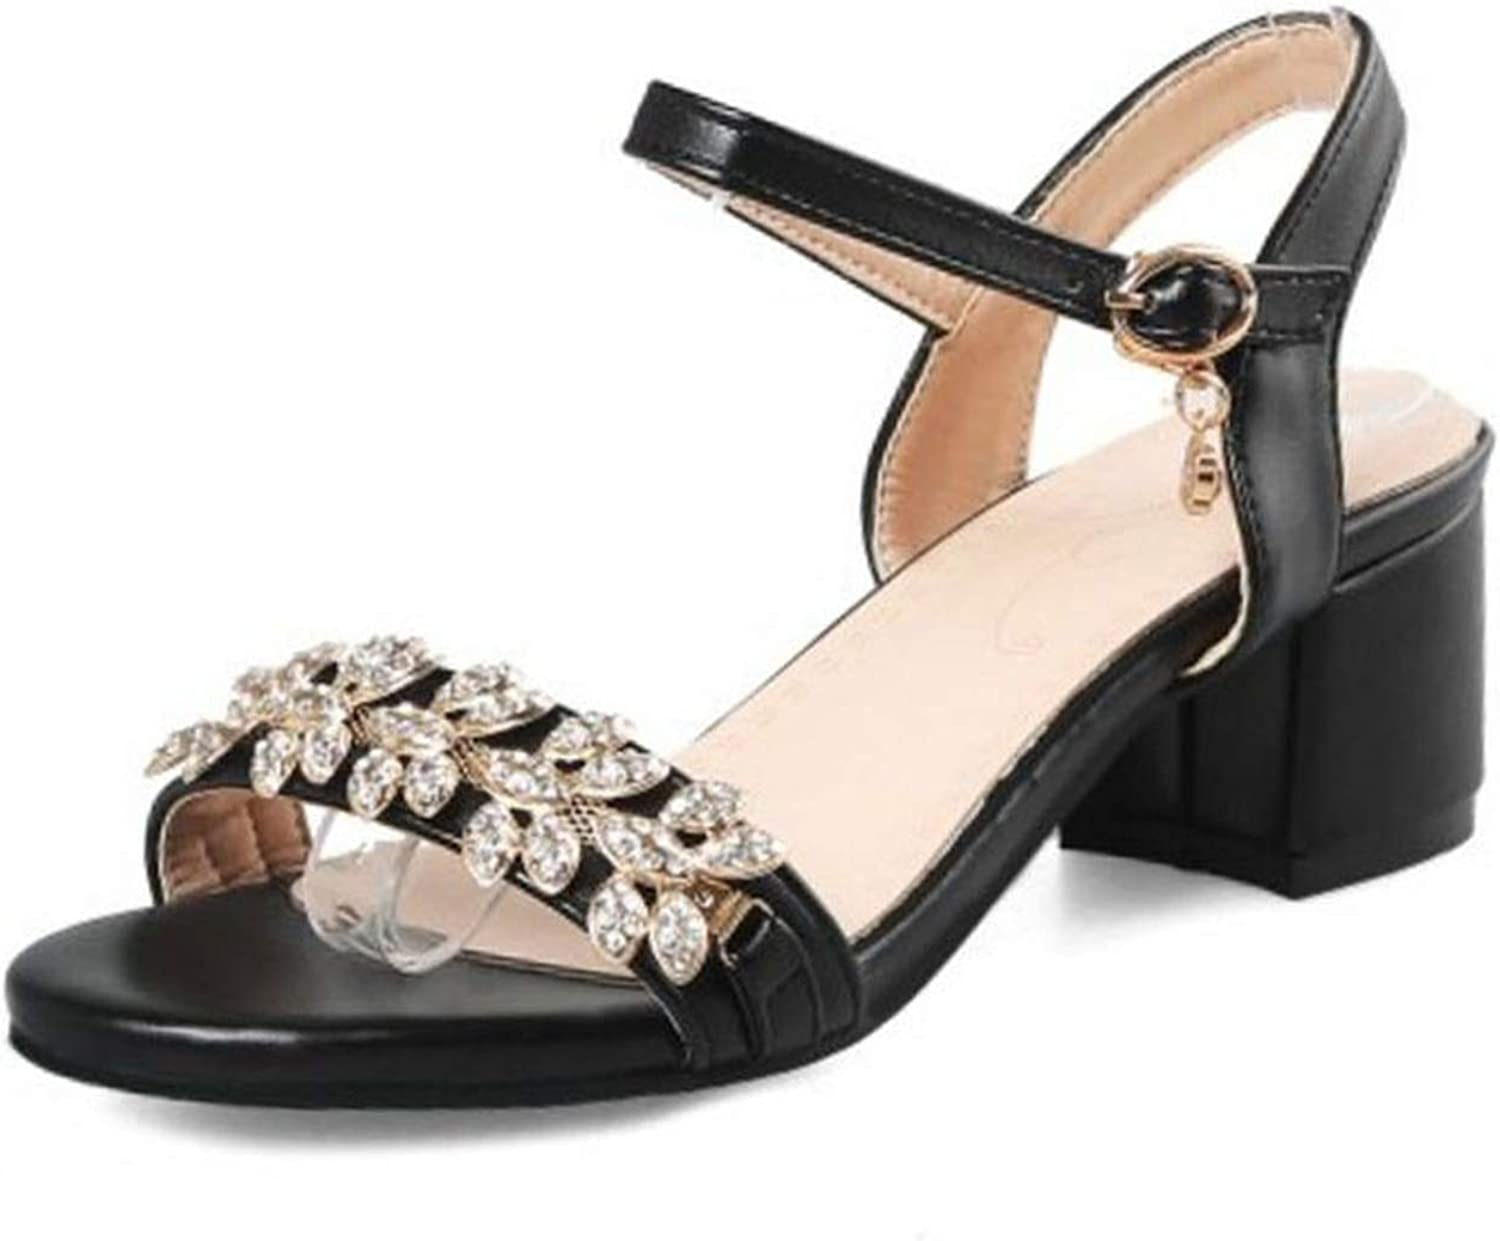 Fairly Buckle Strap Crystal Thick Heel Fashion Summer shoes for Party Wedding shoes,Black,12.5